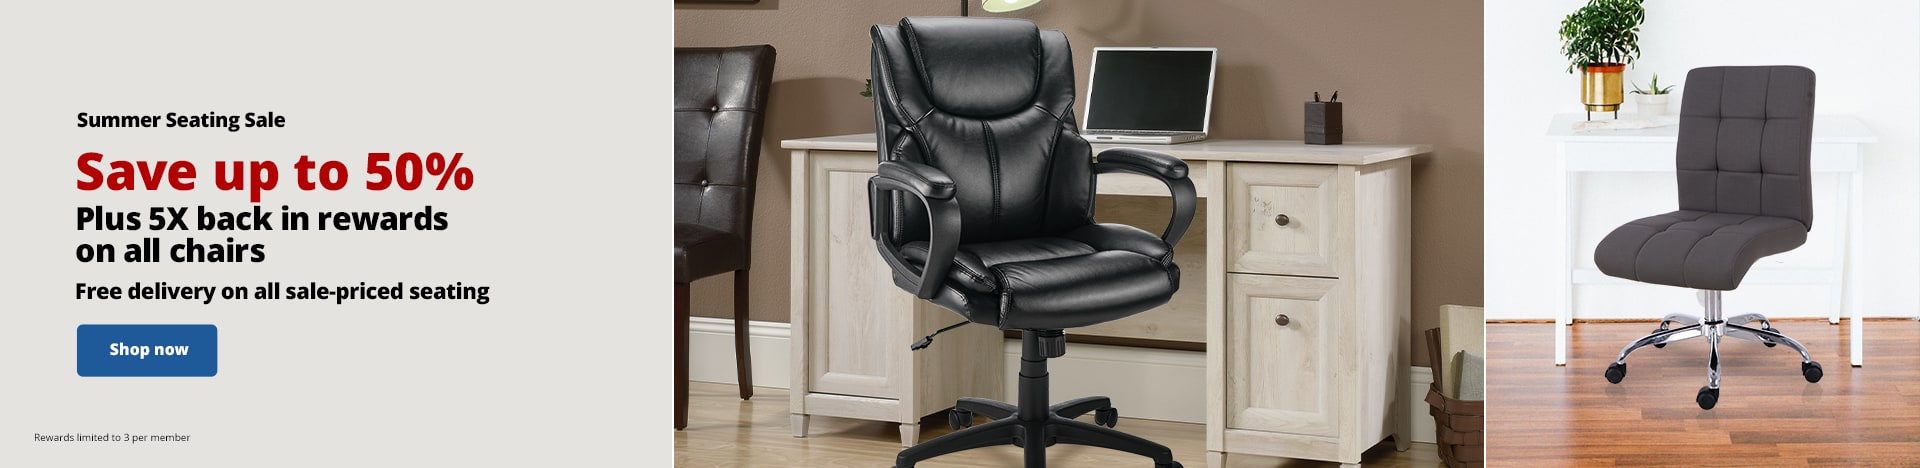 Summer Seating Sale. Save up to 50% Plus 5X back in rewards on all chairs. Free delivery on all sale-priced seating